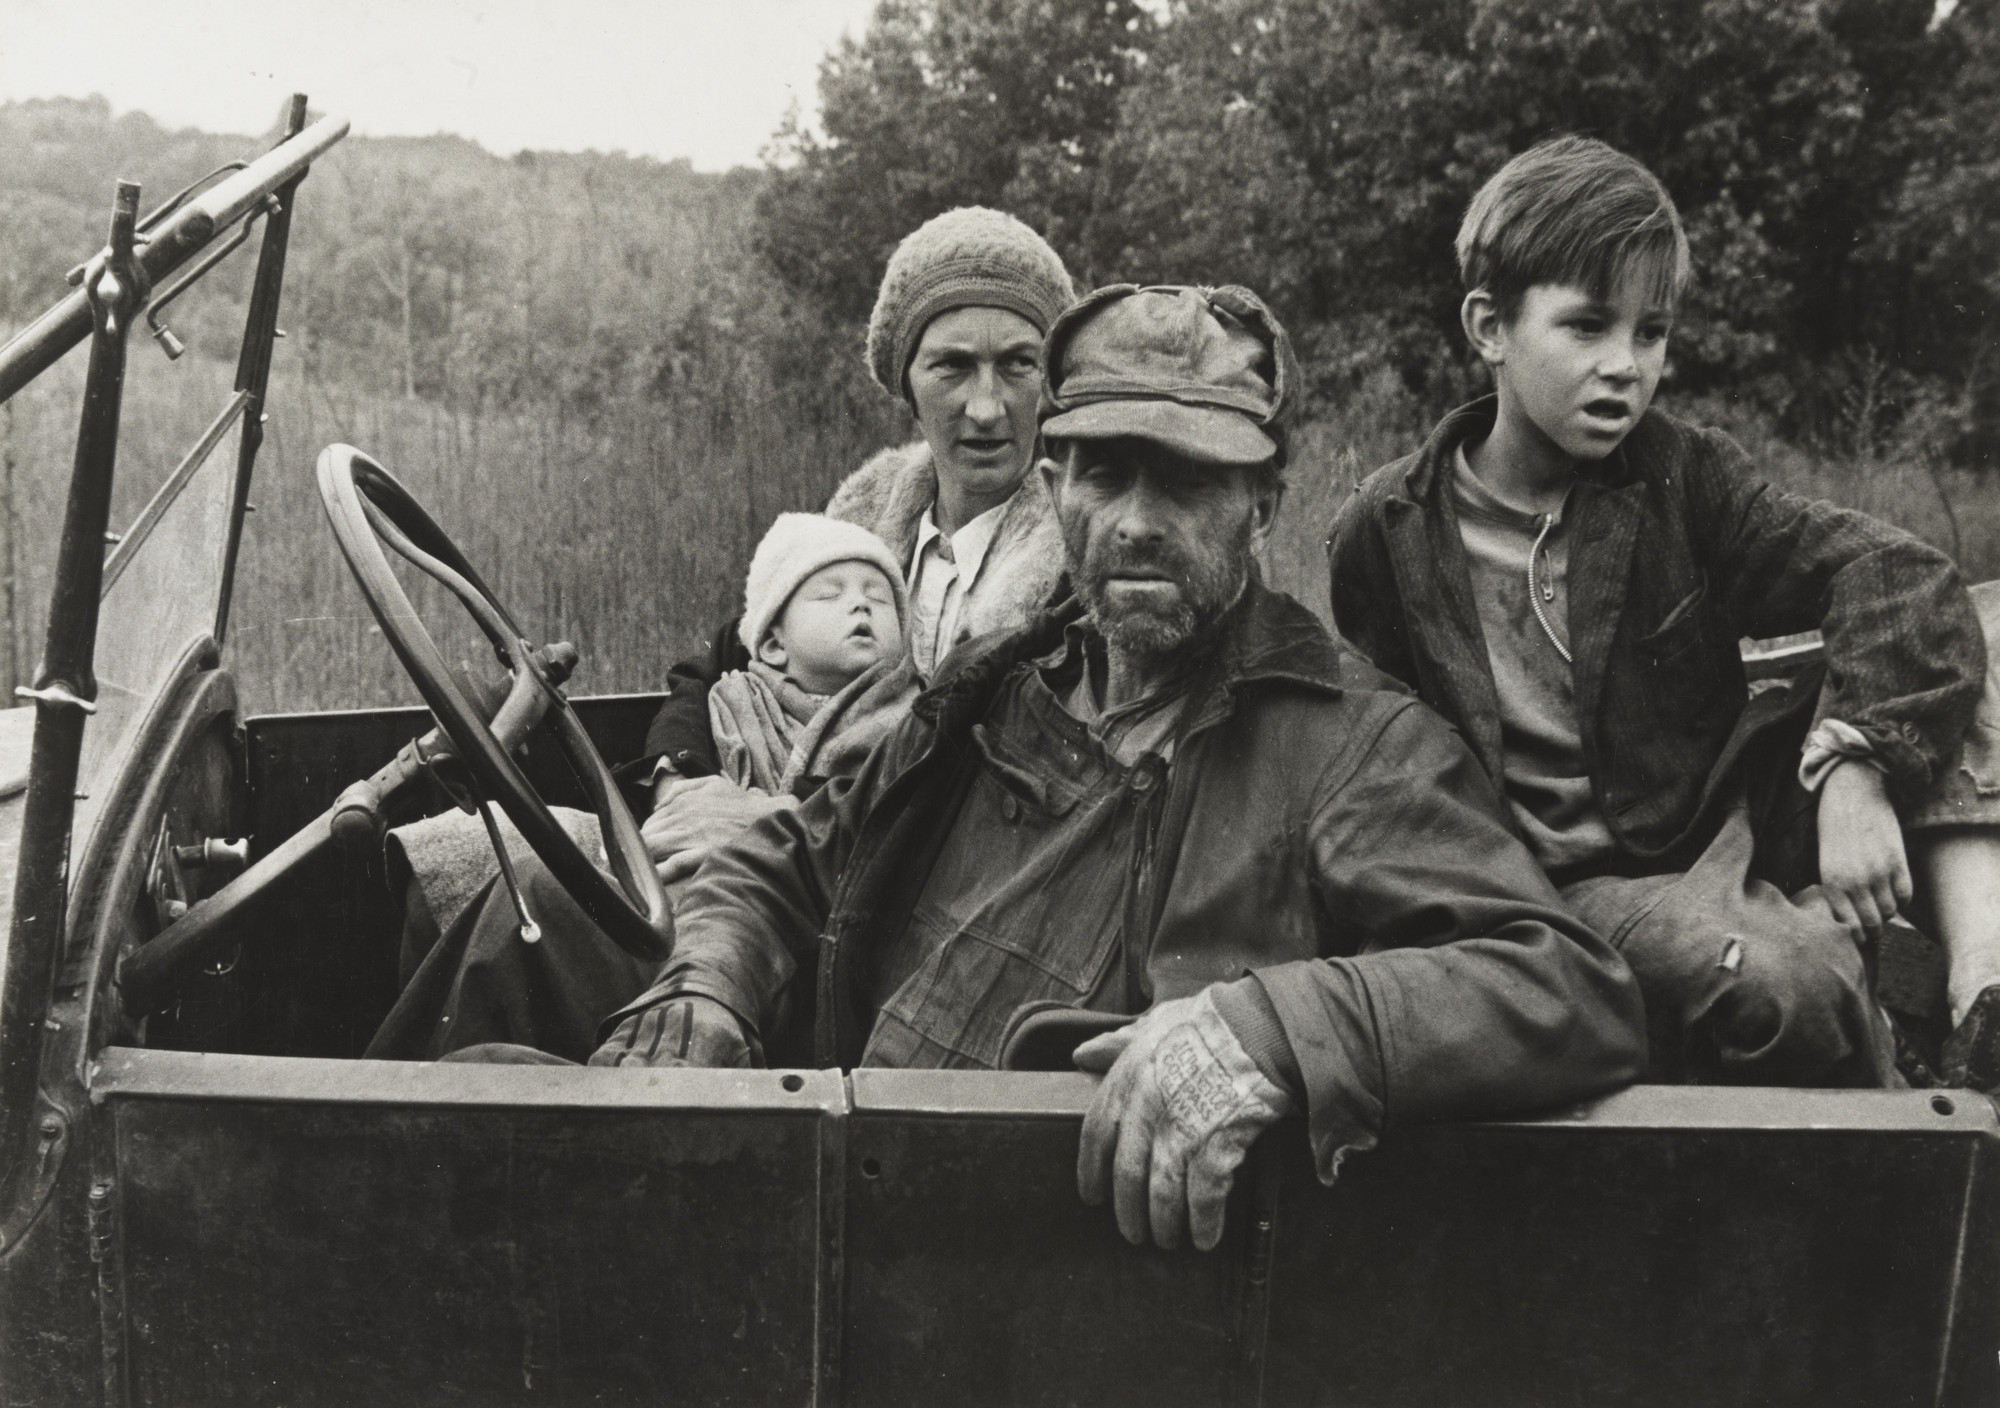 Ben Shahn. Ozark Family, Arkansas. 1935